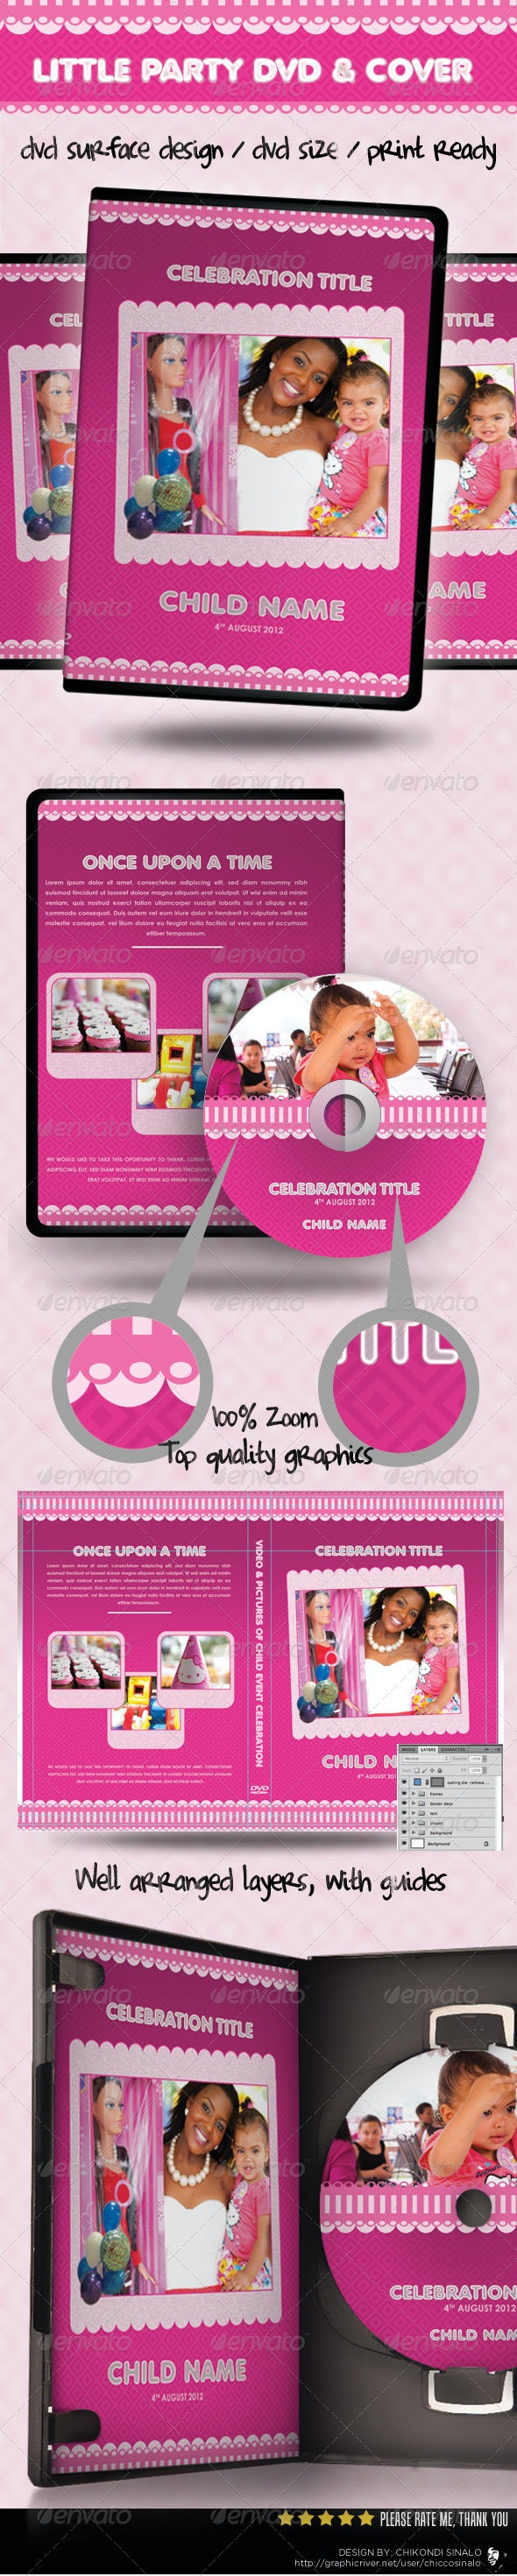 Little Party Dvd Cover Template - CD & DVD Artwork Print Templates